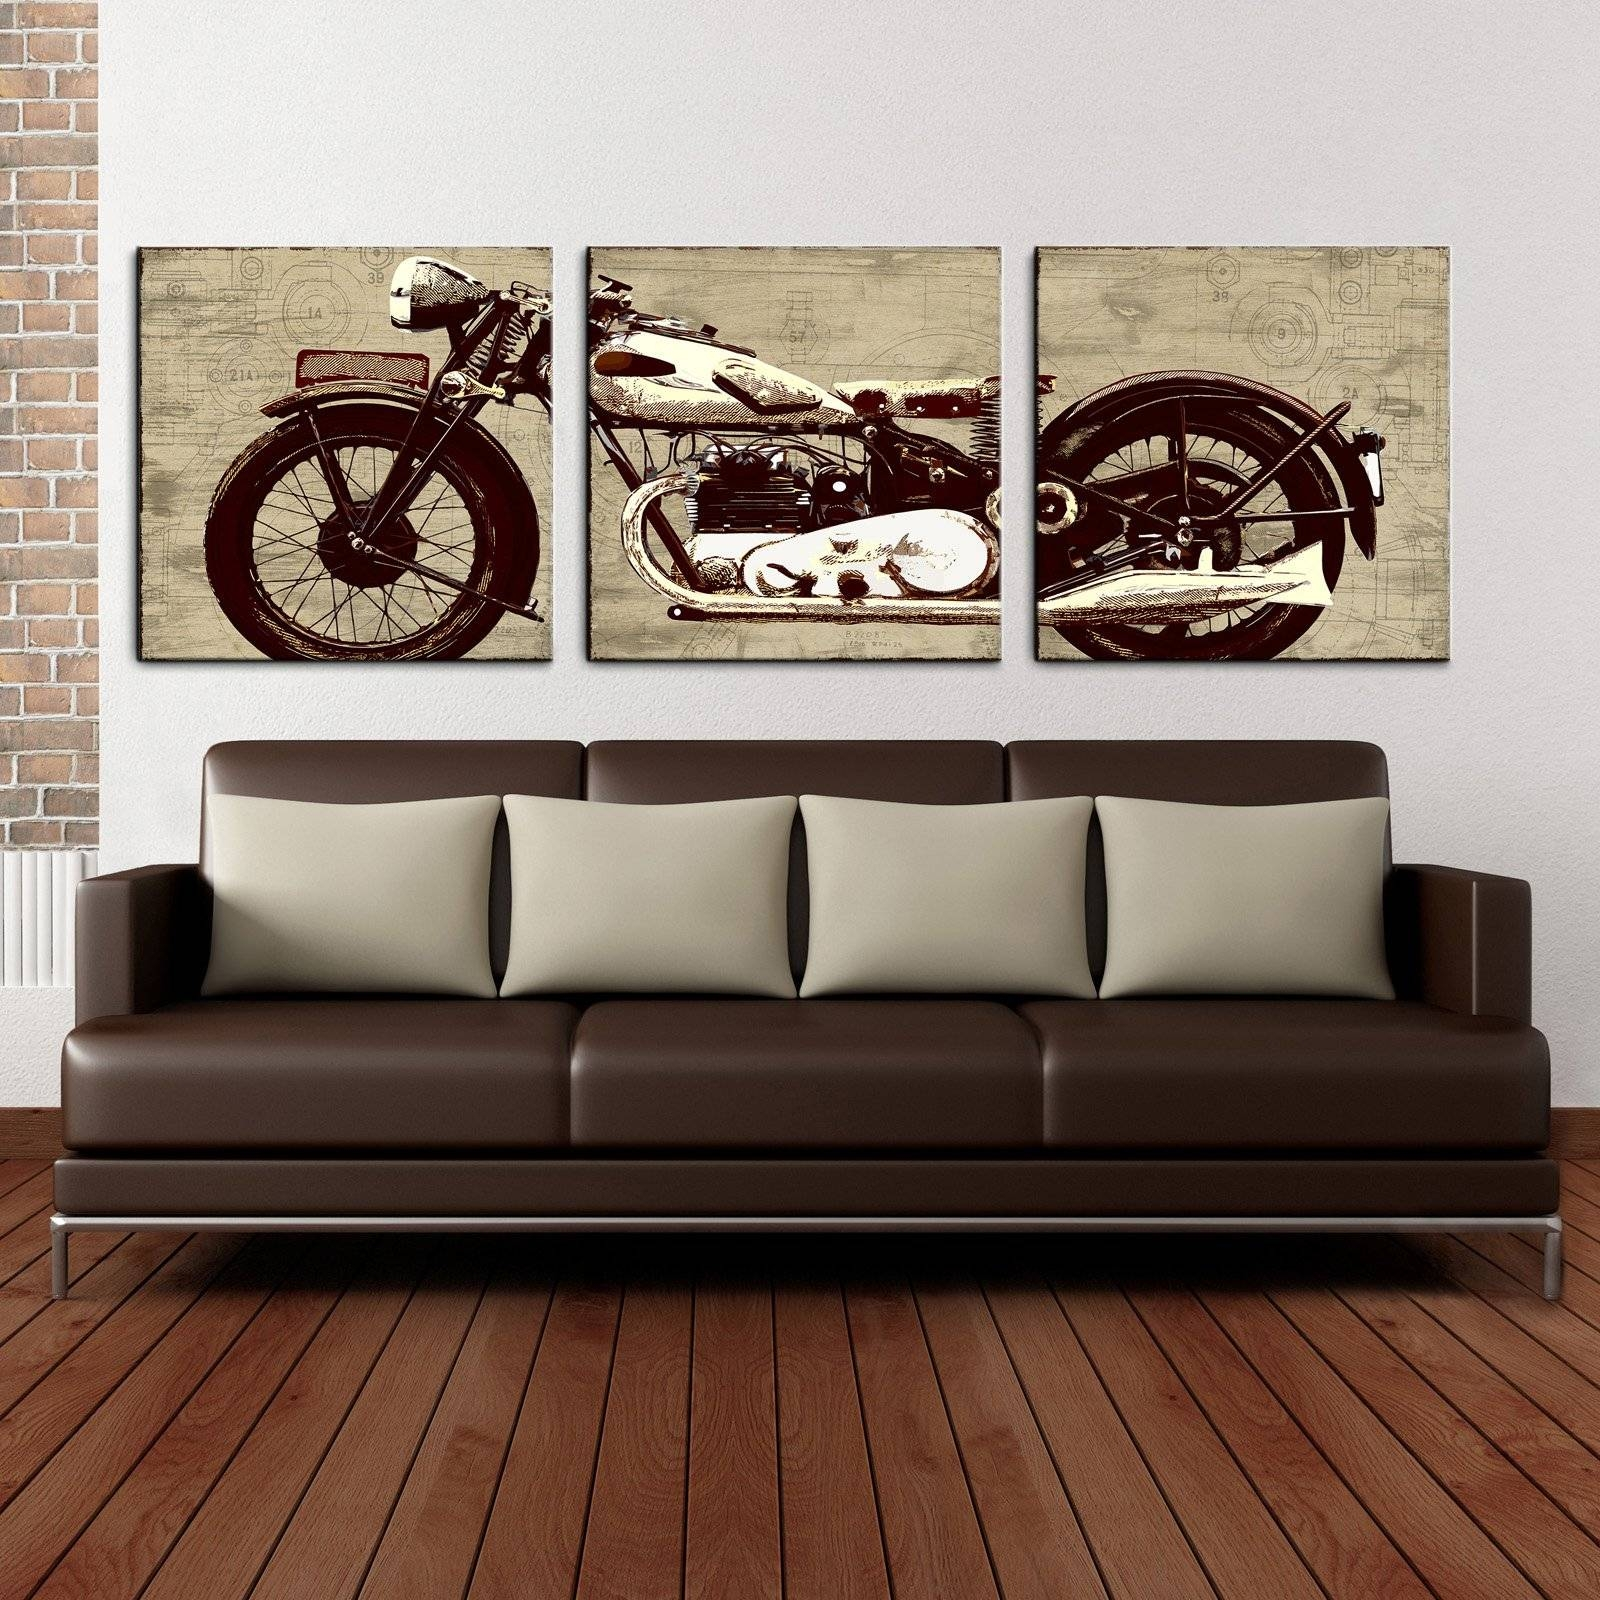 Motorcycle Wall Art | Roselawnlutheran Within Latest Indian Metal Wall Art (View 11 of 20)